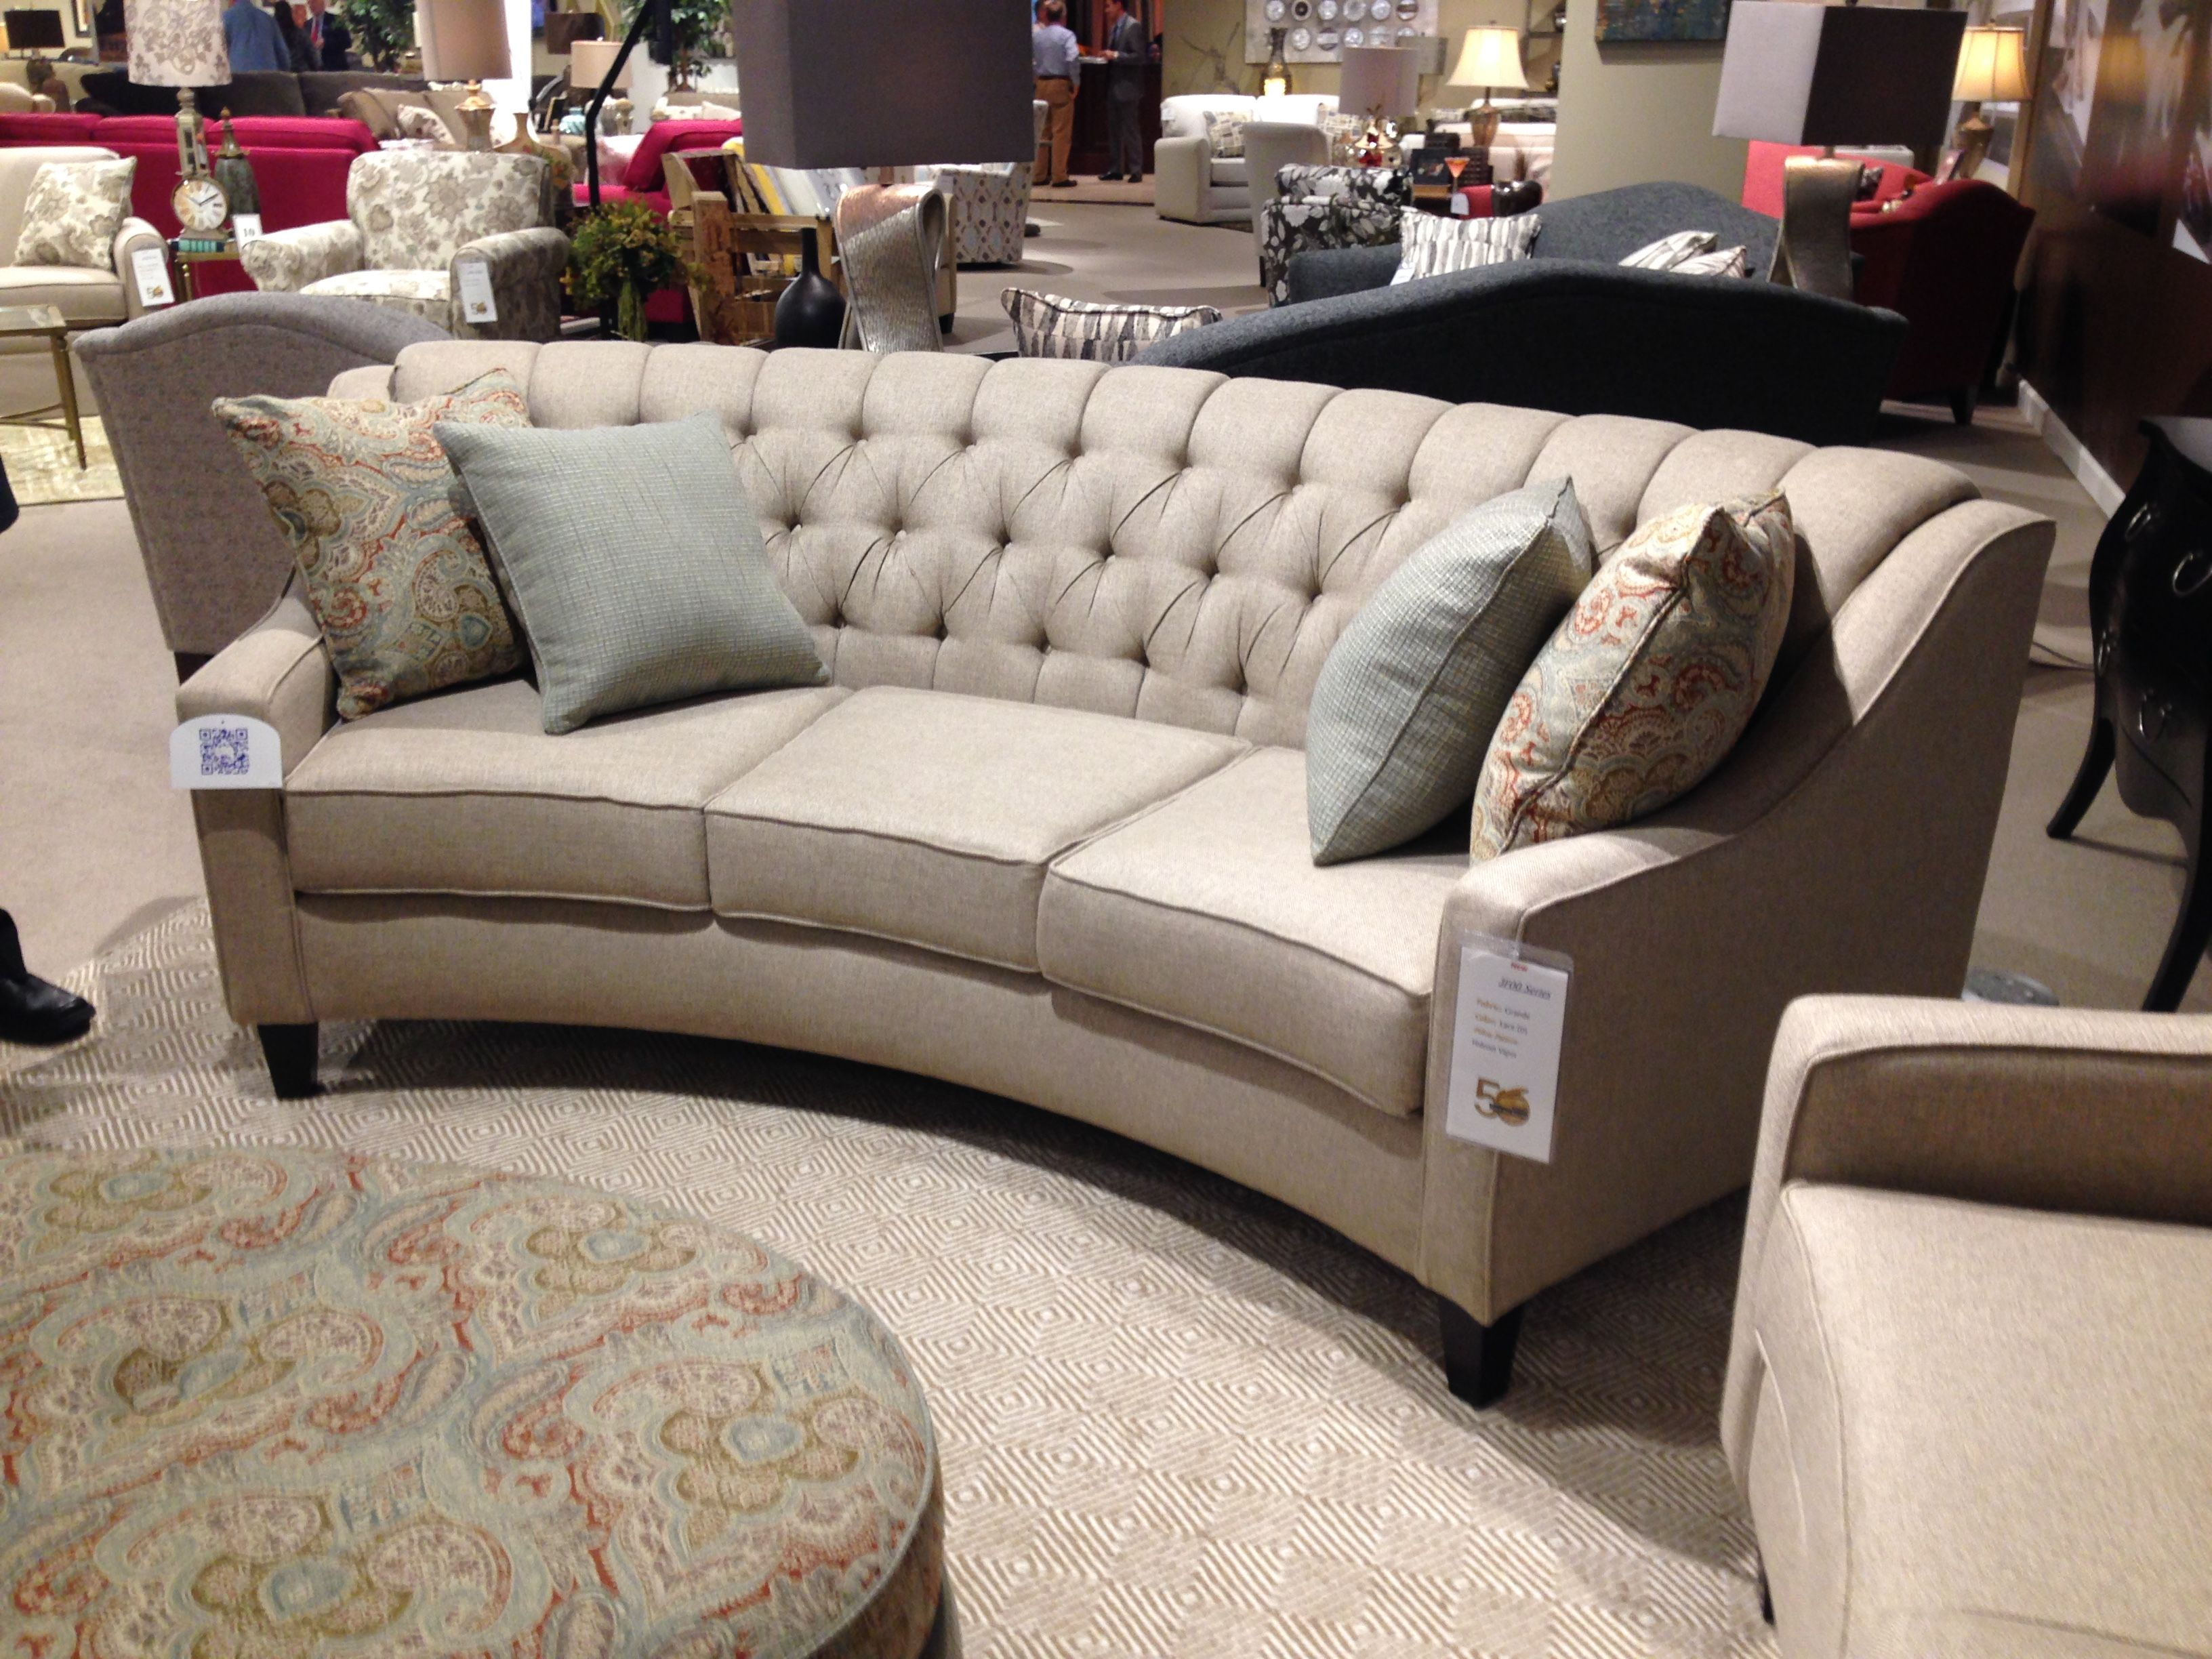 new curved sofa from england furniture comes in 3 sizes highpoint furniture market